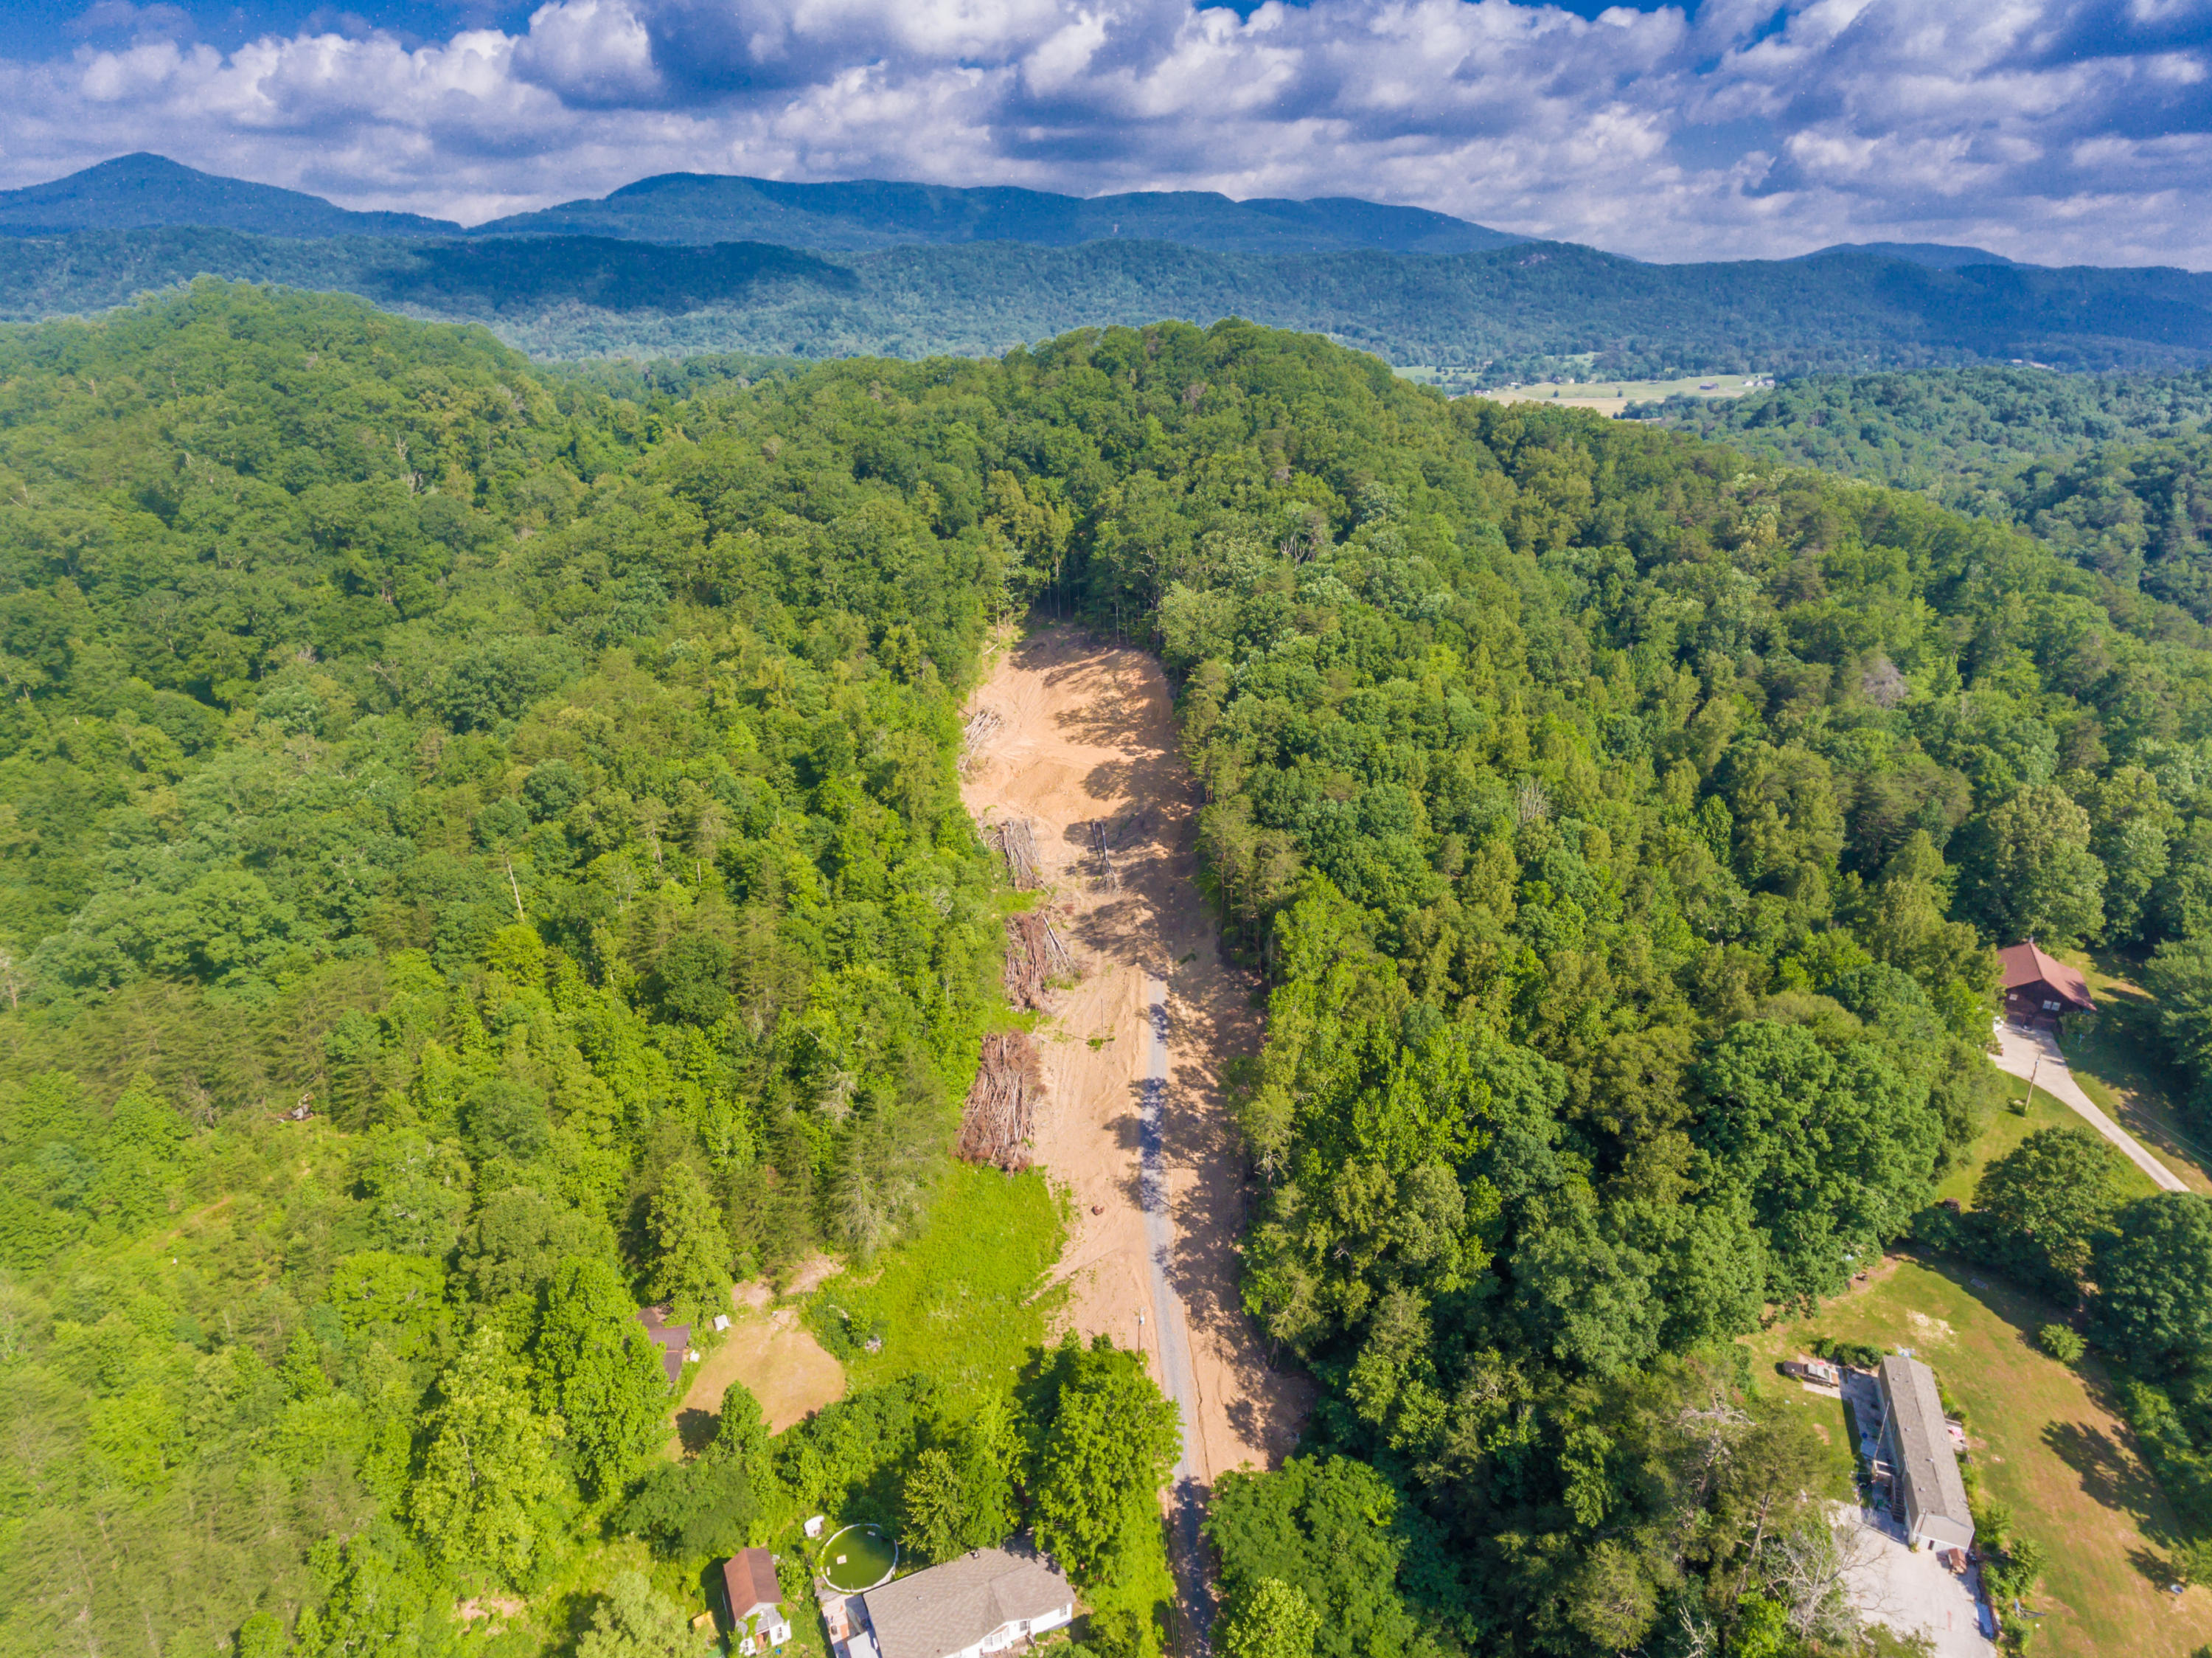 20190602044613688615000000-o Clinton anderson county homes for sale